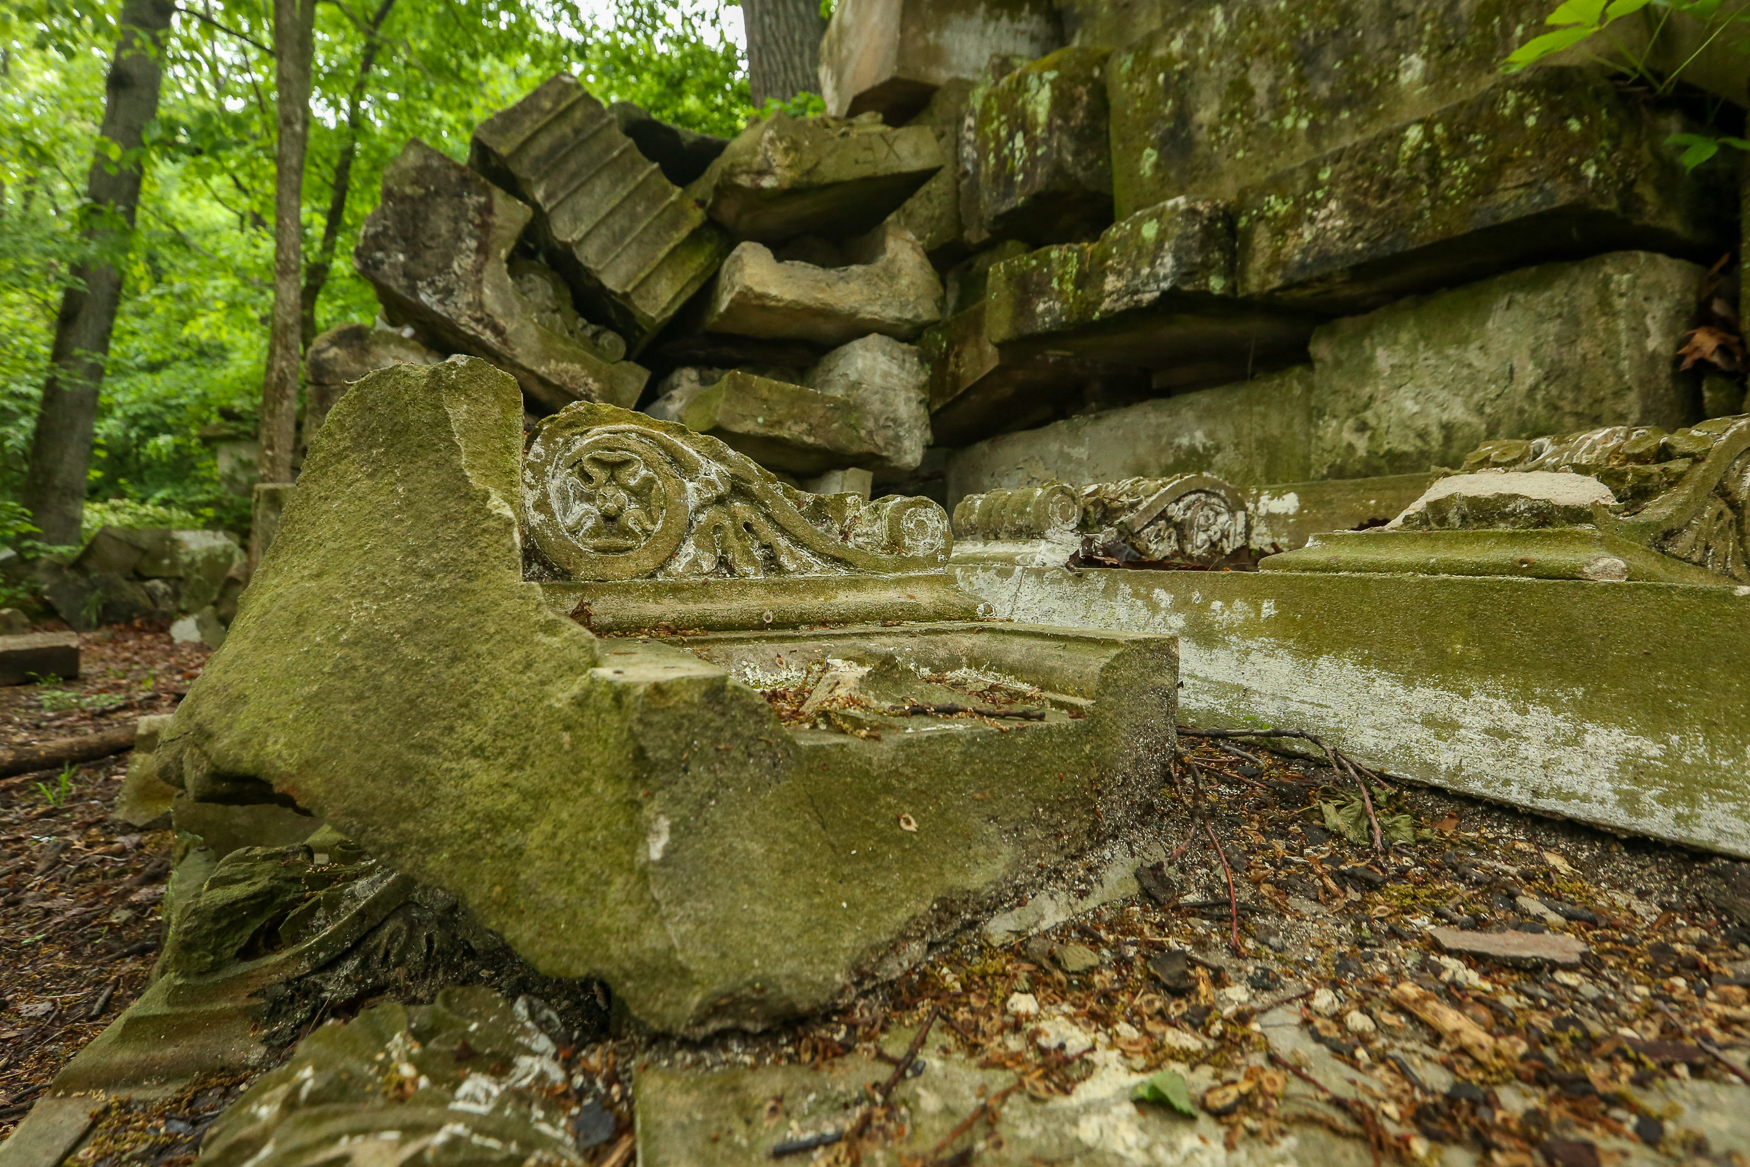 In the late 1950s, parts of the Capitol were renovated to create new office space and a subway terminal. The removed façade pieces were dumped in Rock Creek Park, where they now languish, covered by vines. The Capitol Stones are barely off of the beaten path - they're just half a mile from the{ }Rock Creek Park Horse Center parking lot. However, stumbling across the maze of crumbling stones feels like uncovering a mystery worthy of Indiana Jones. Many of the stones still have intricate carvings that have barely been tainted by encroaching vines. This locals-only attraction is definitely worth a visit, even if the location is visible on Google Maps. (Amanda Andrade-Rhoades/DC Refined)